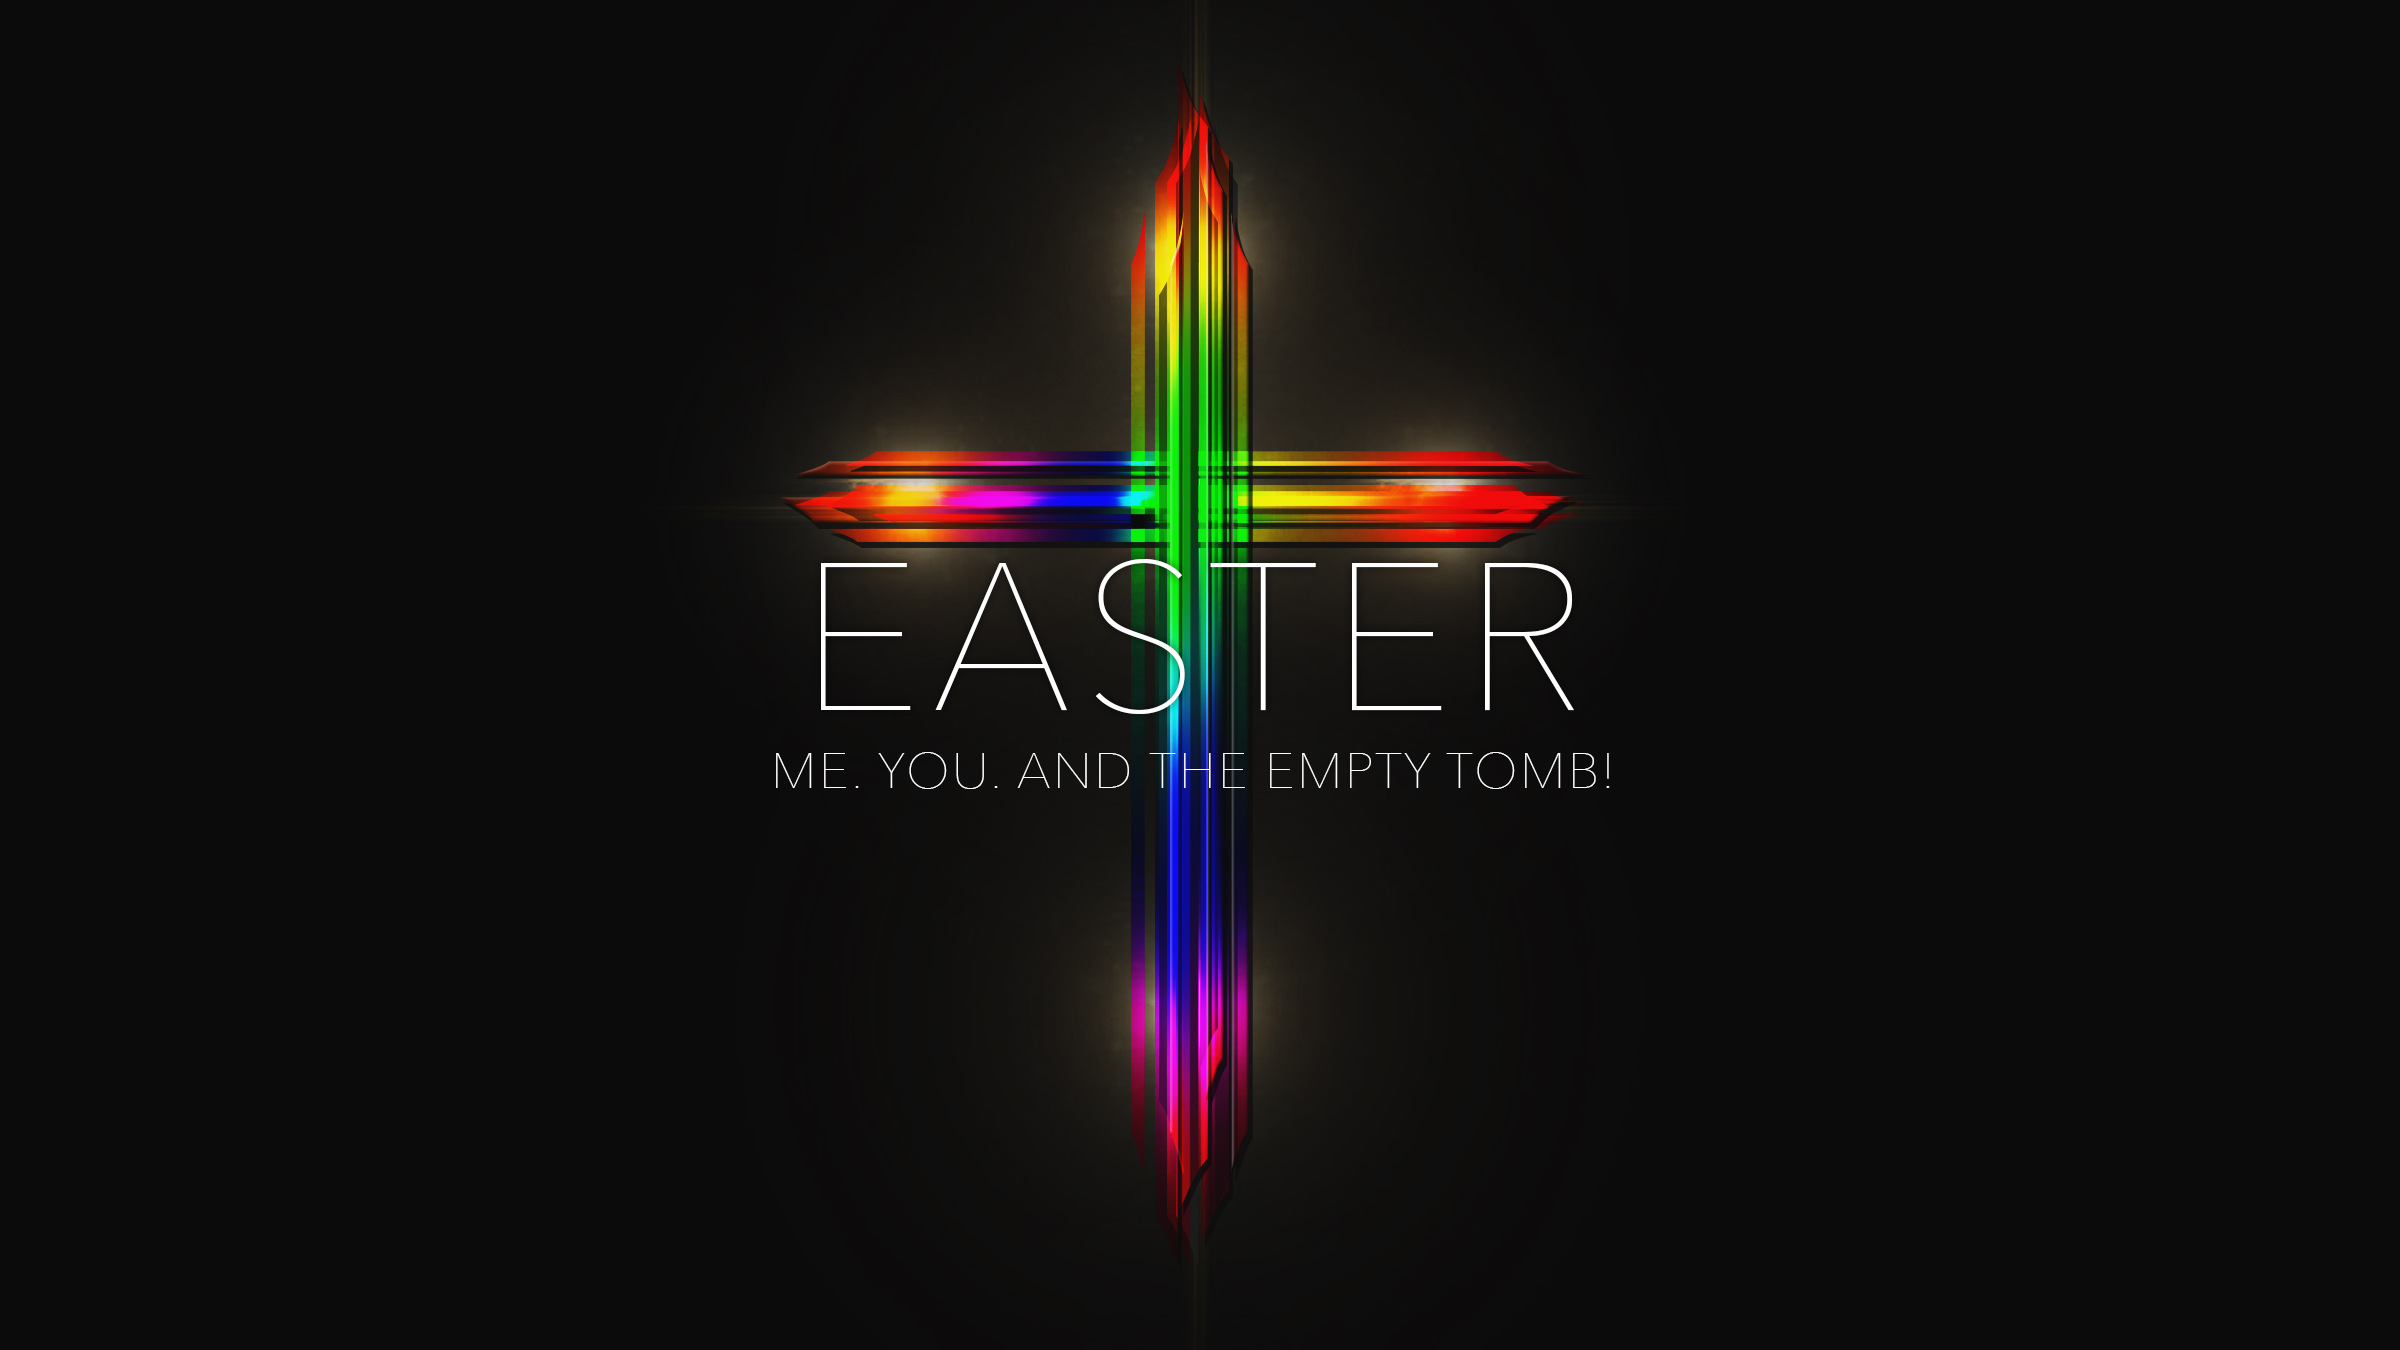 You. Me. And the Empty Tomb. (Sun)